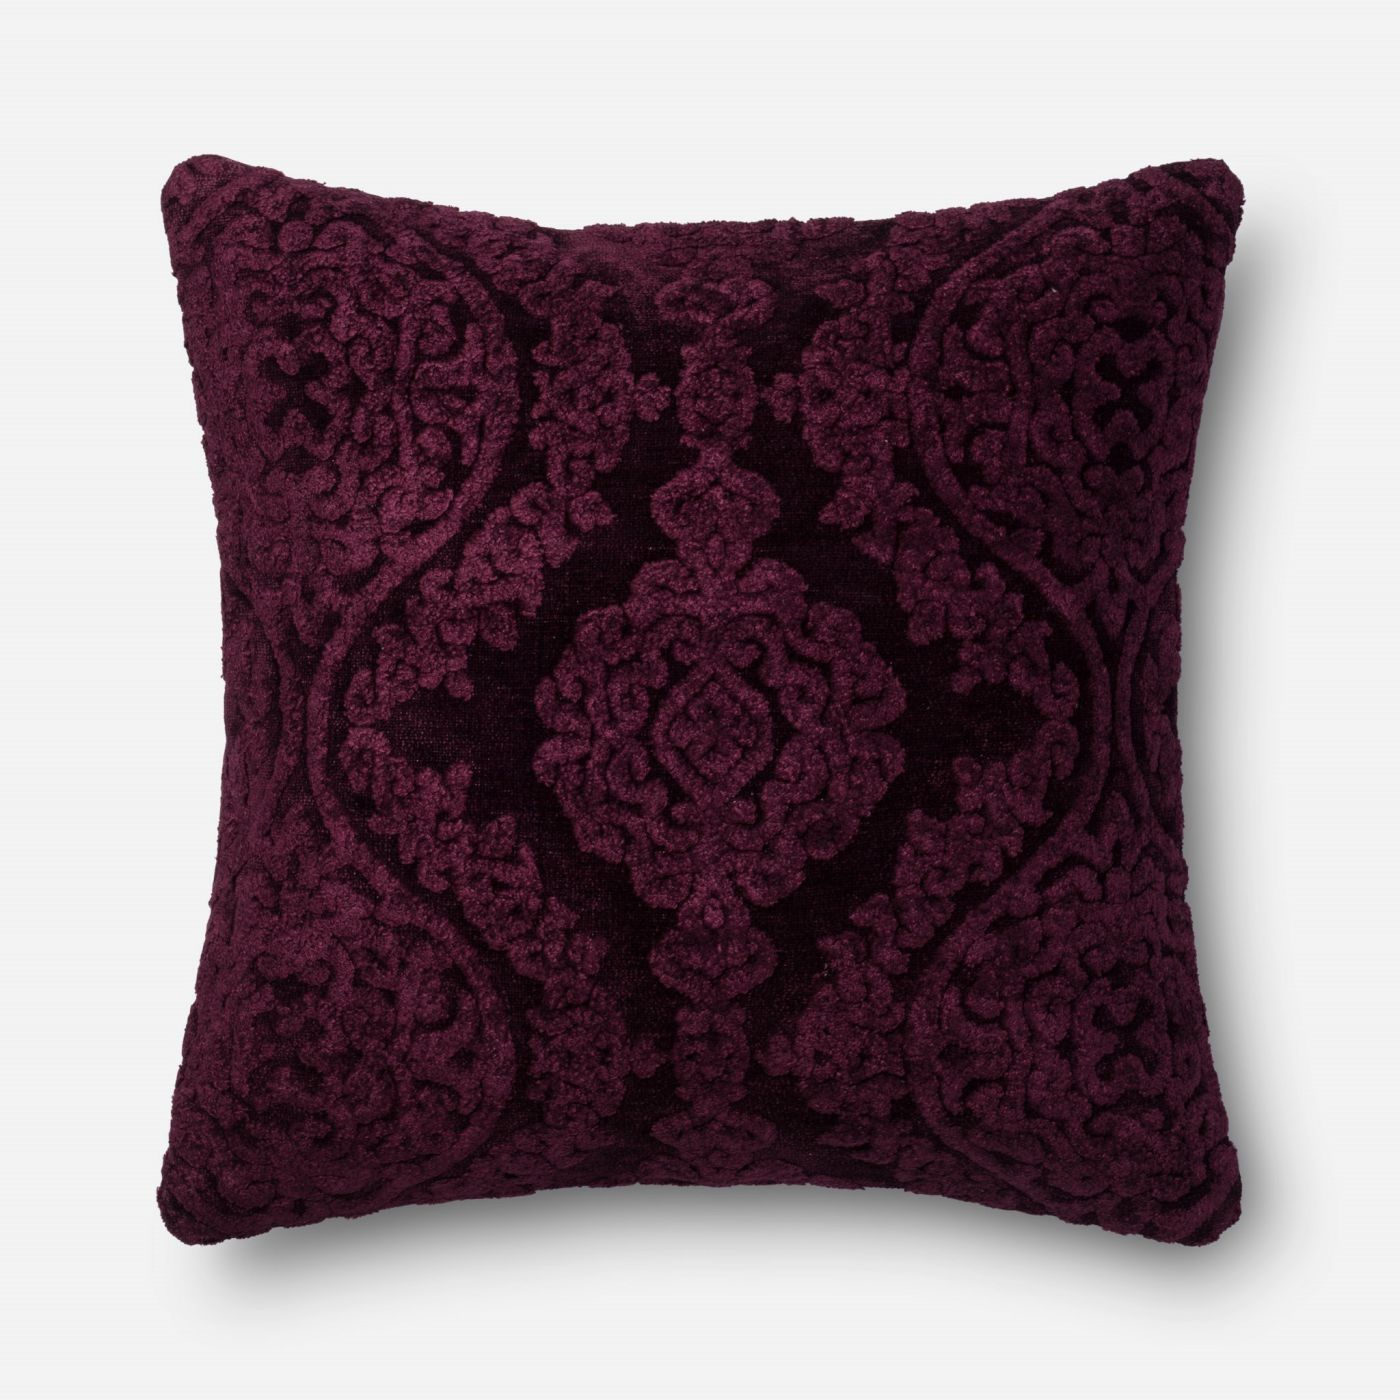 Throw Pillow Warehouse : Loloi Rugs Loloi Eggplant Decorative Throw Pillow (GPI05) DSETGPI05EG00PIL3. Only $139.00 at ...